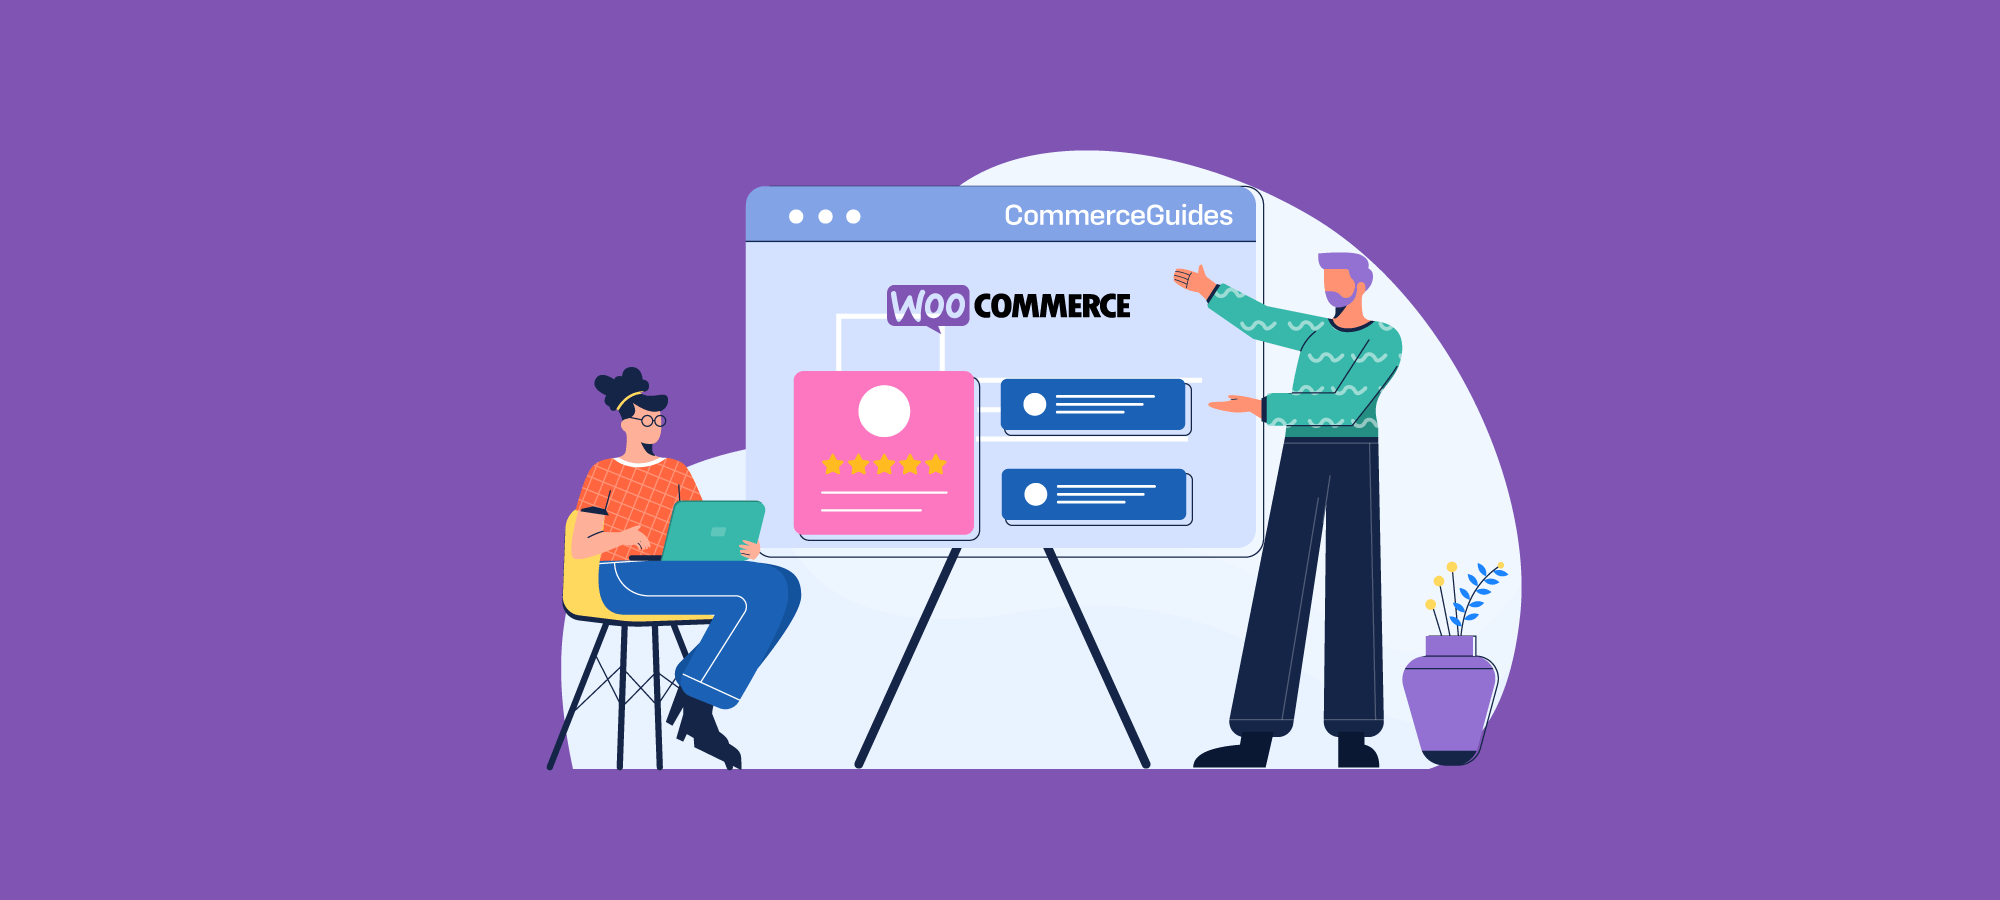 Best-WooCommerce-Stores-CommerceGuides-Social-Post-Banner